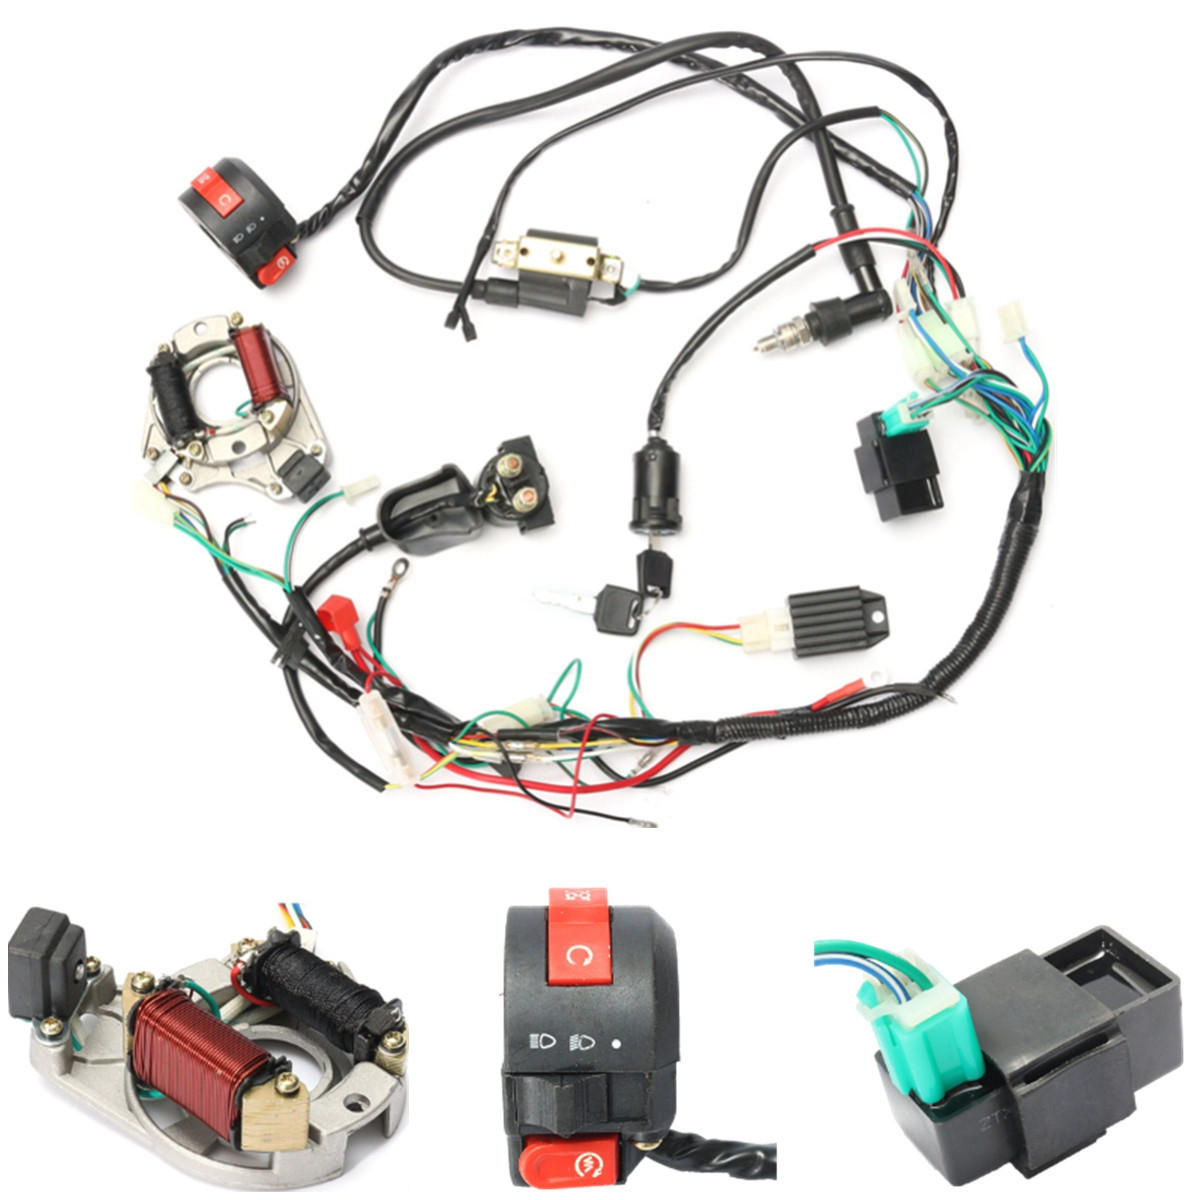 50cc 70cc 90cc 110cc cdi wire harness assembly wiring kit atv 110cc chinese atv wiring diagram 50cc 70cc 90cc 110cc cdi wire harness assembly wiring kit atv electric start quad